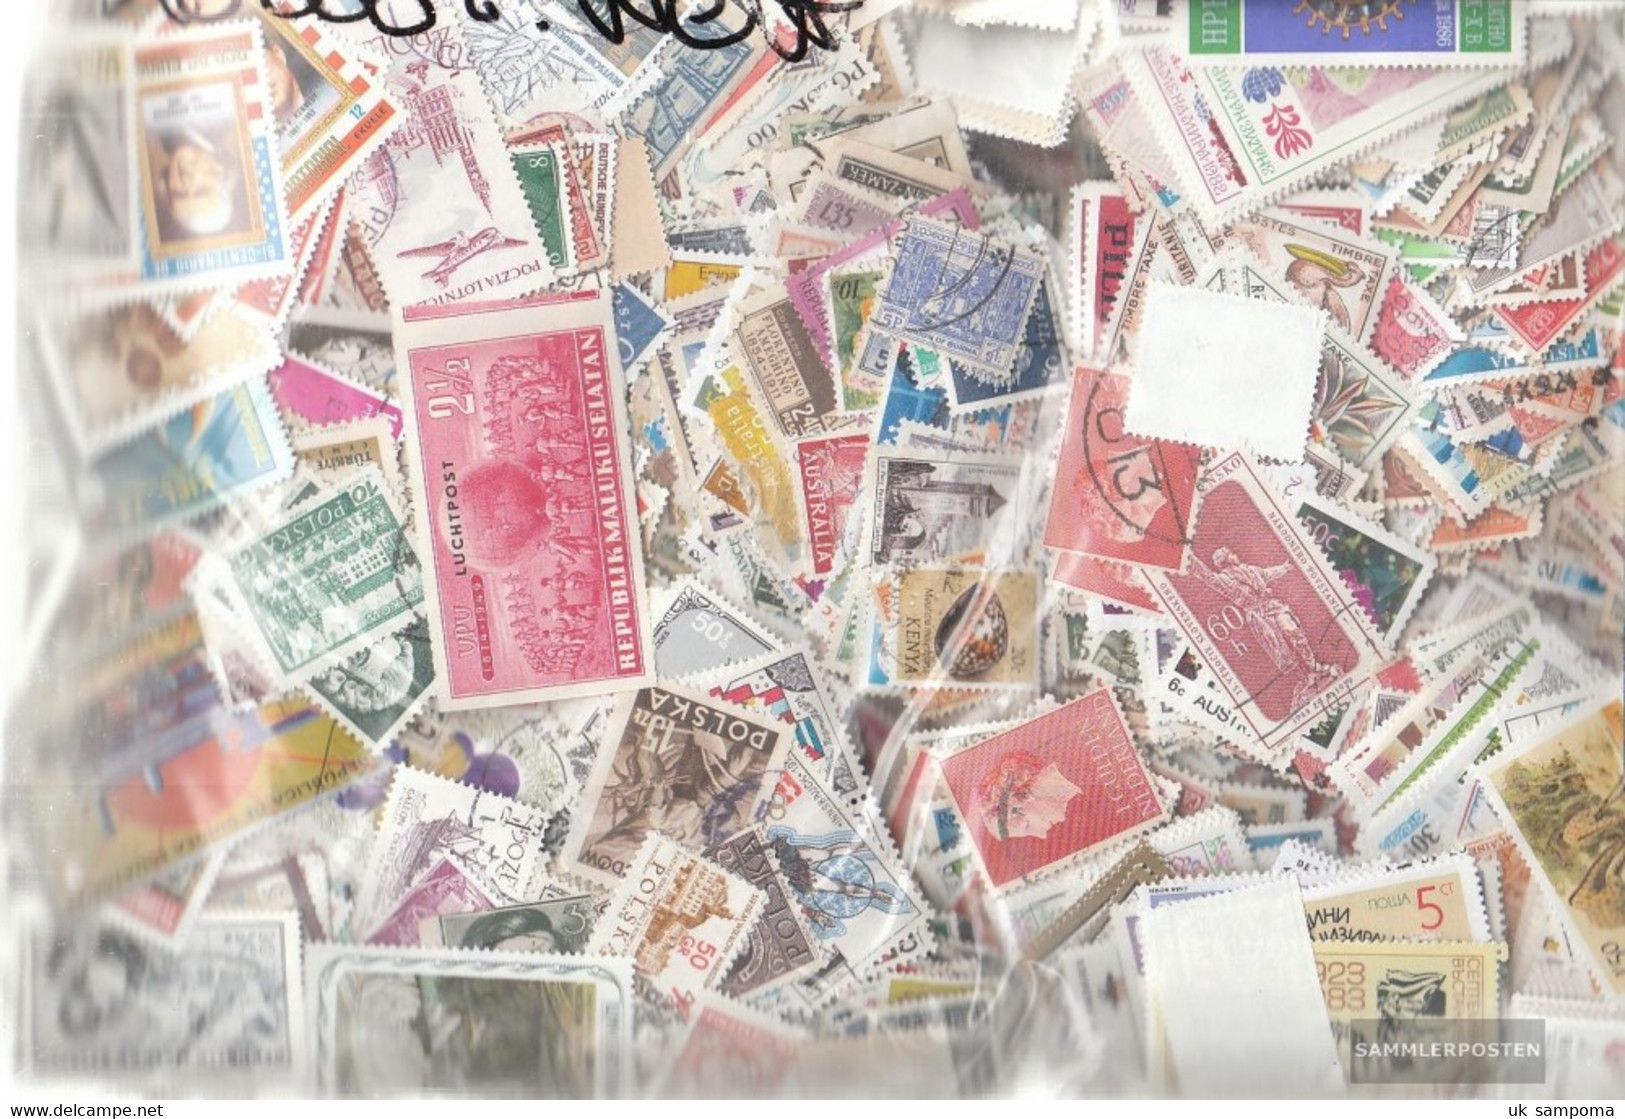 All World Stamps-50.000 Different Stamps - Stamps